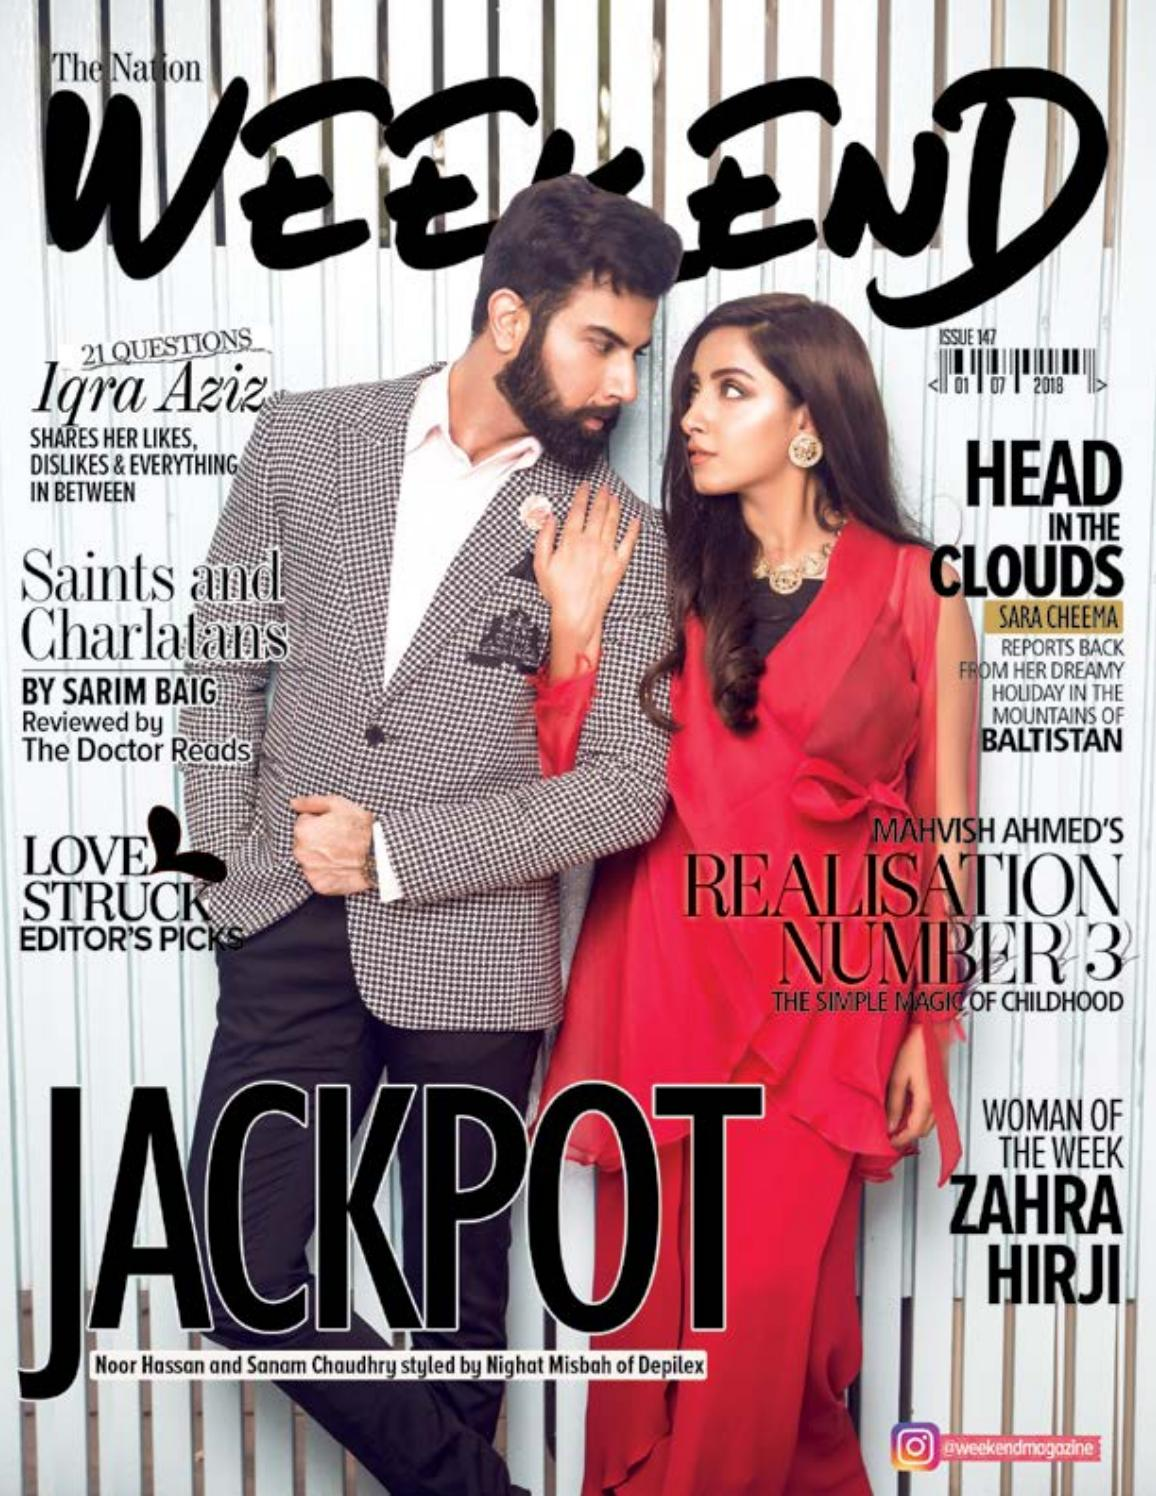 Weekend magazine 01 july 2018 by Weekend - issuu